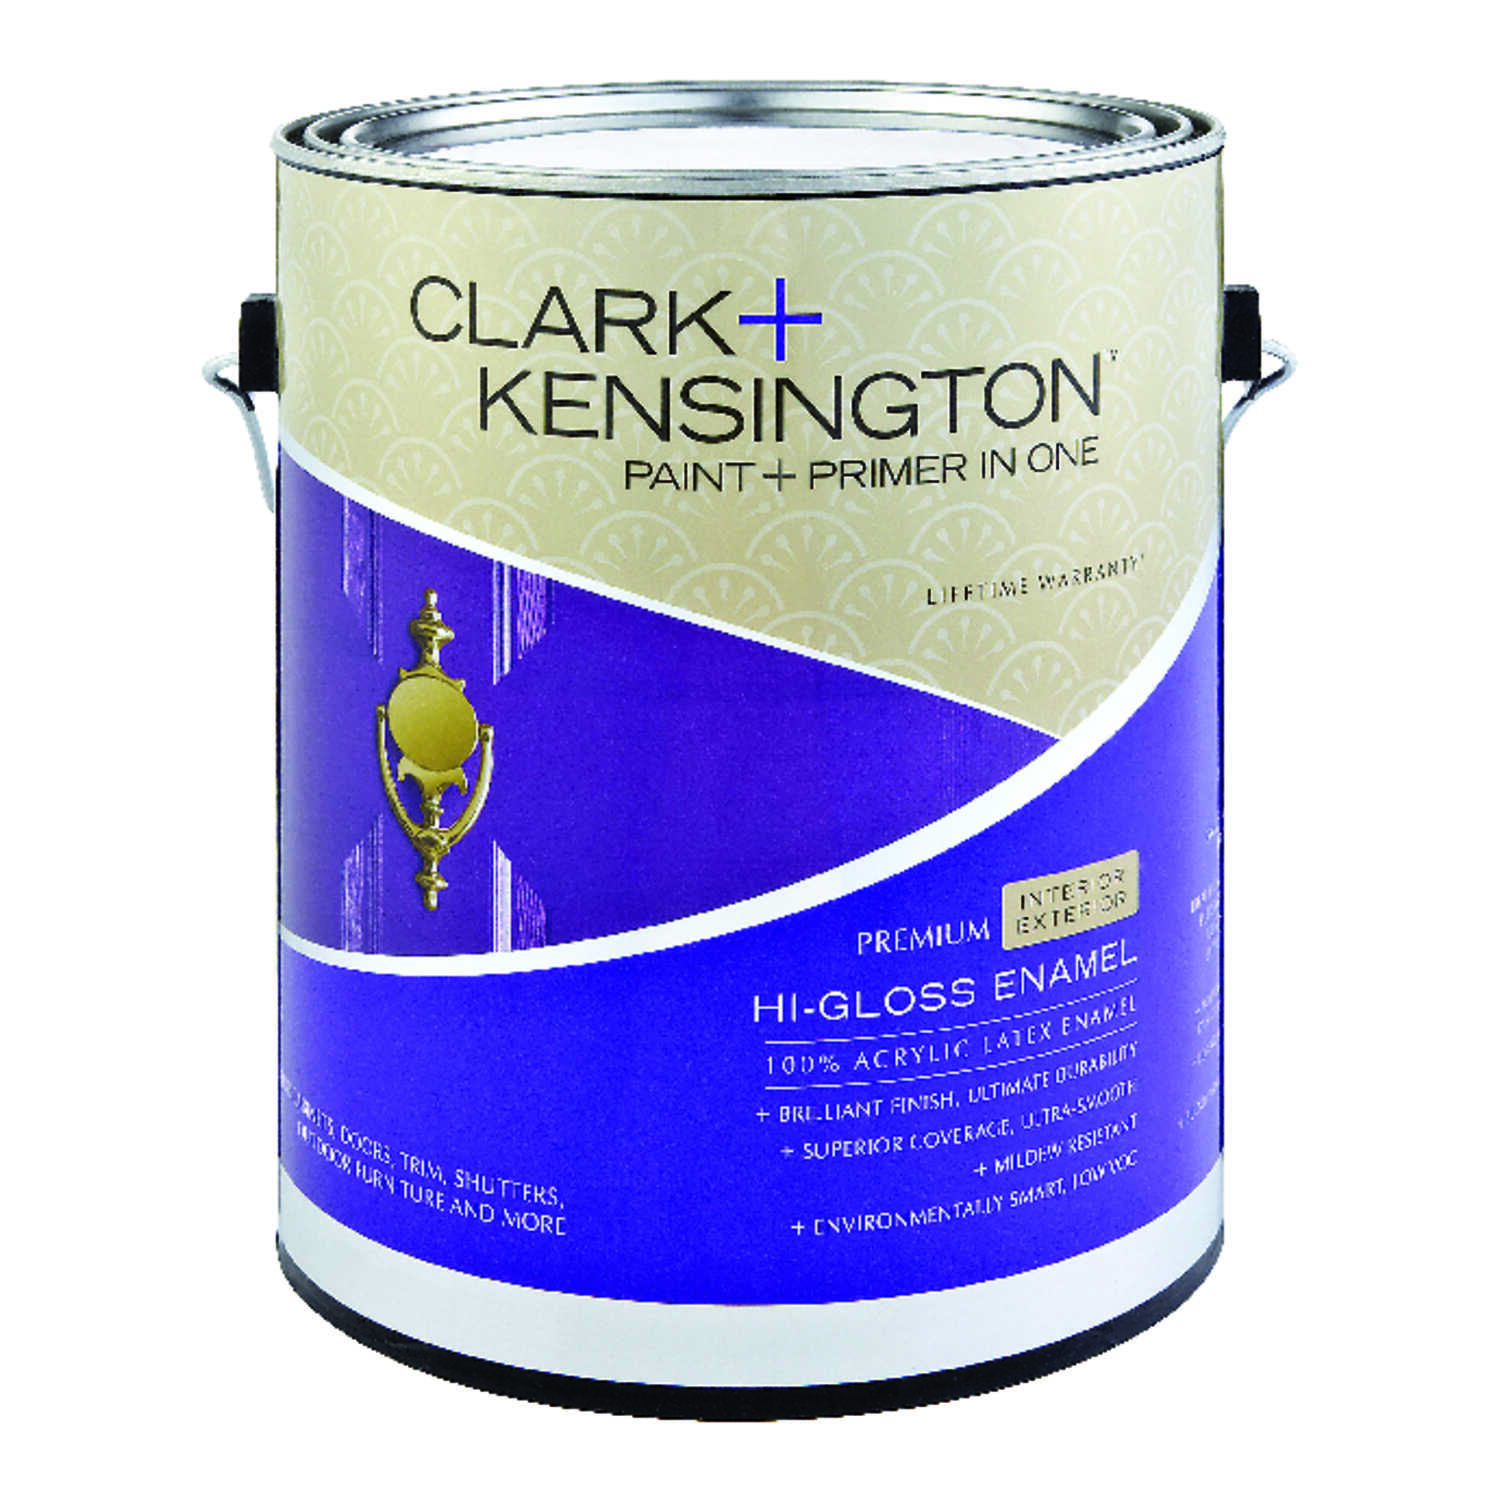 Ace  Clark+Kensington  High-Gloss  Designer White  Acrylic Latex  Paint and Primer  1 gal.